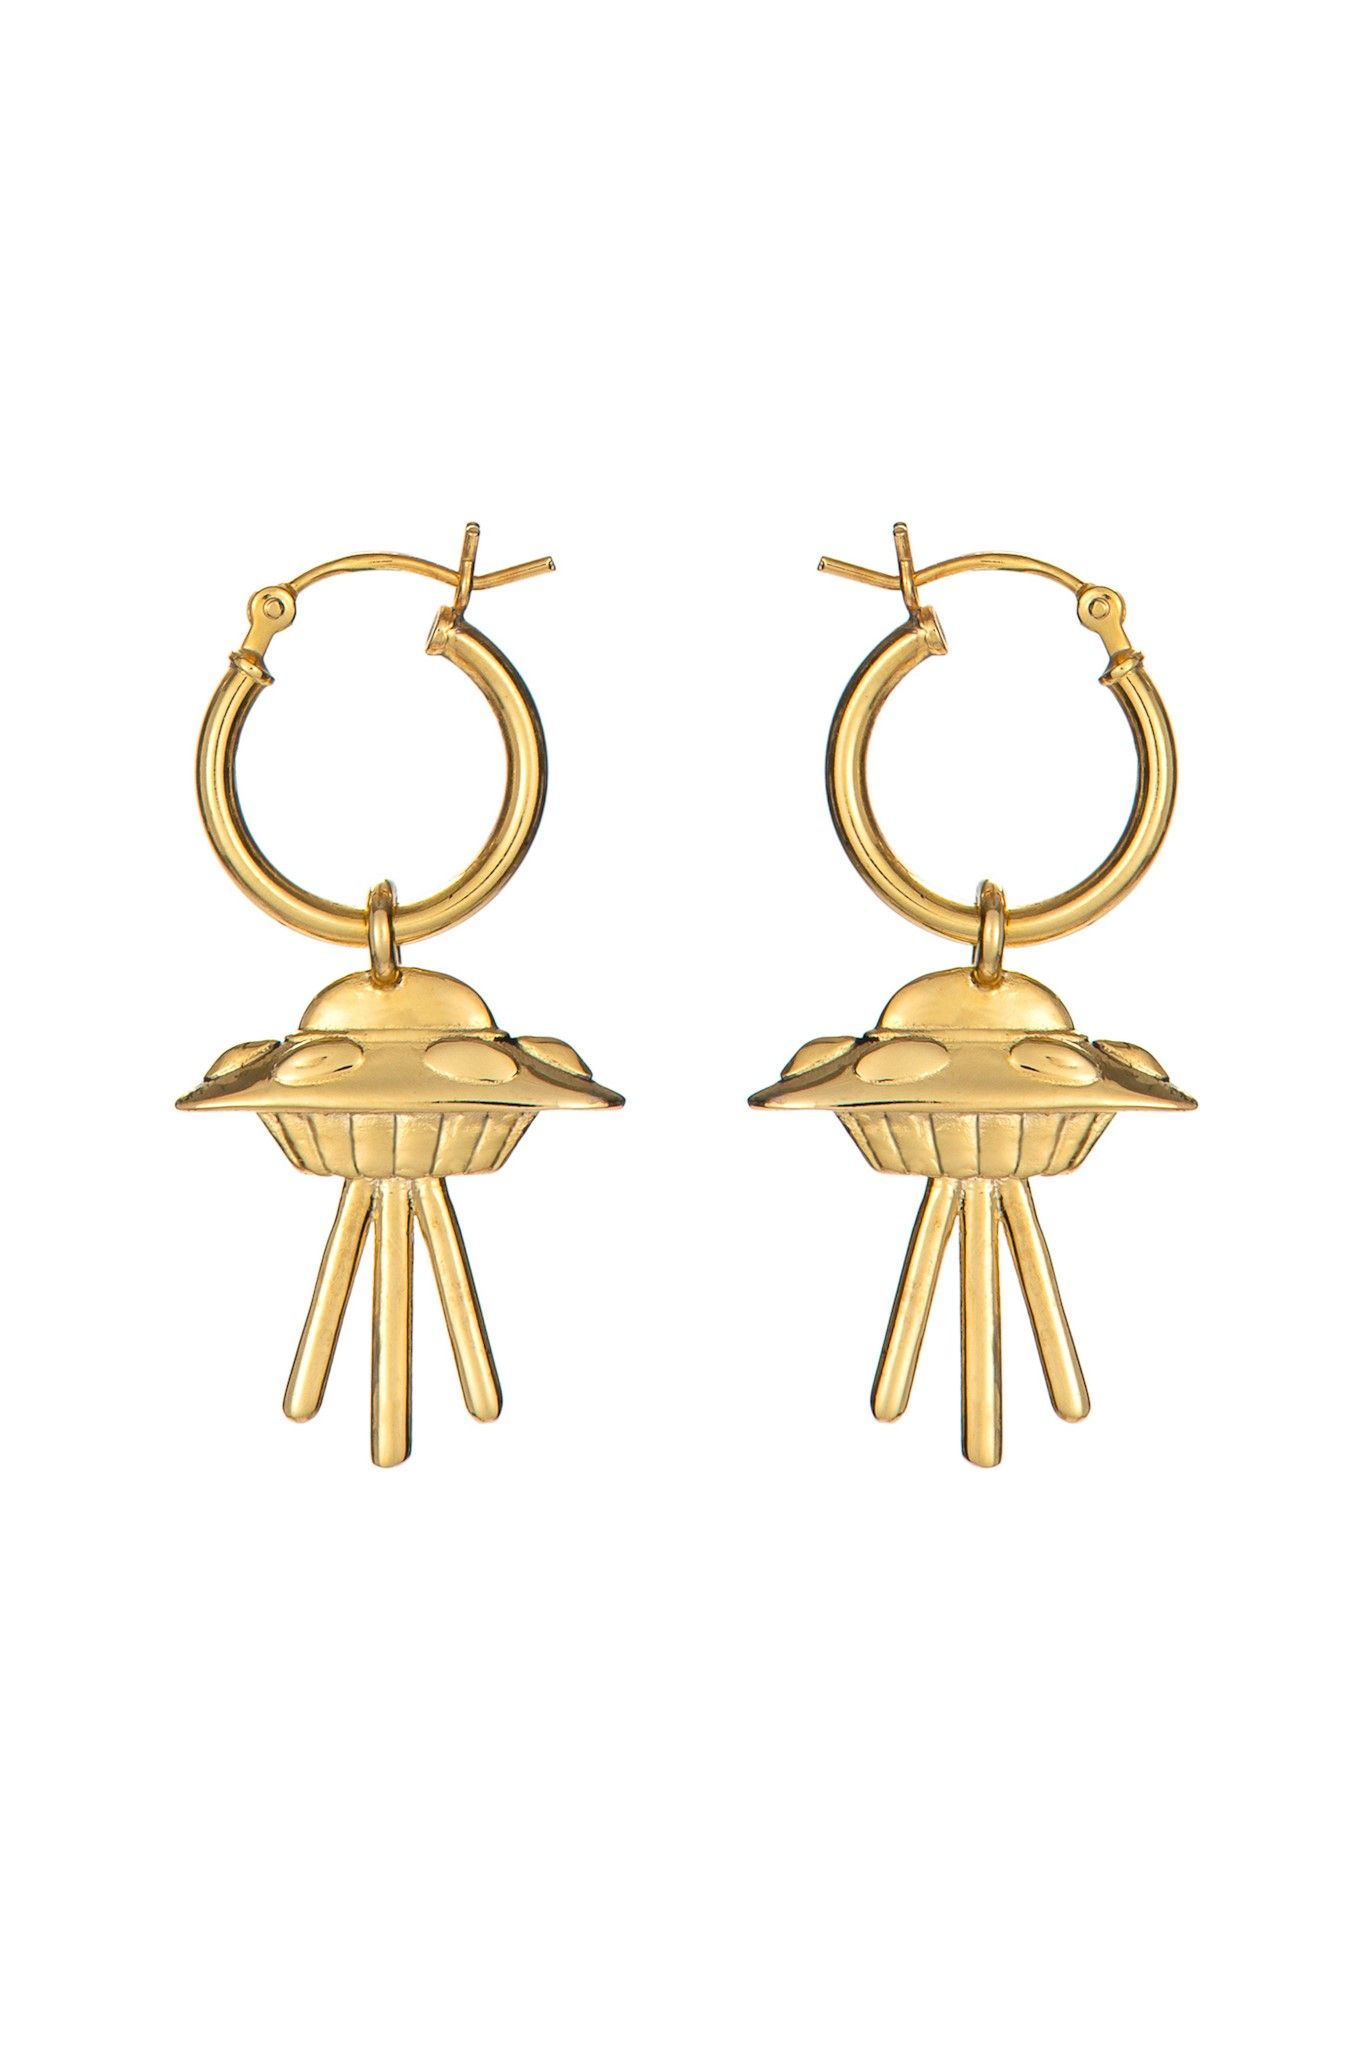 af65bb656 Flying Saucer Earrings | Little Rooms | Pinterest | Earrings, Weird ...